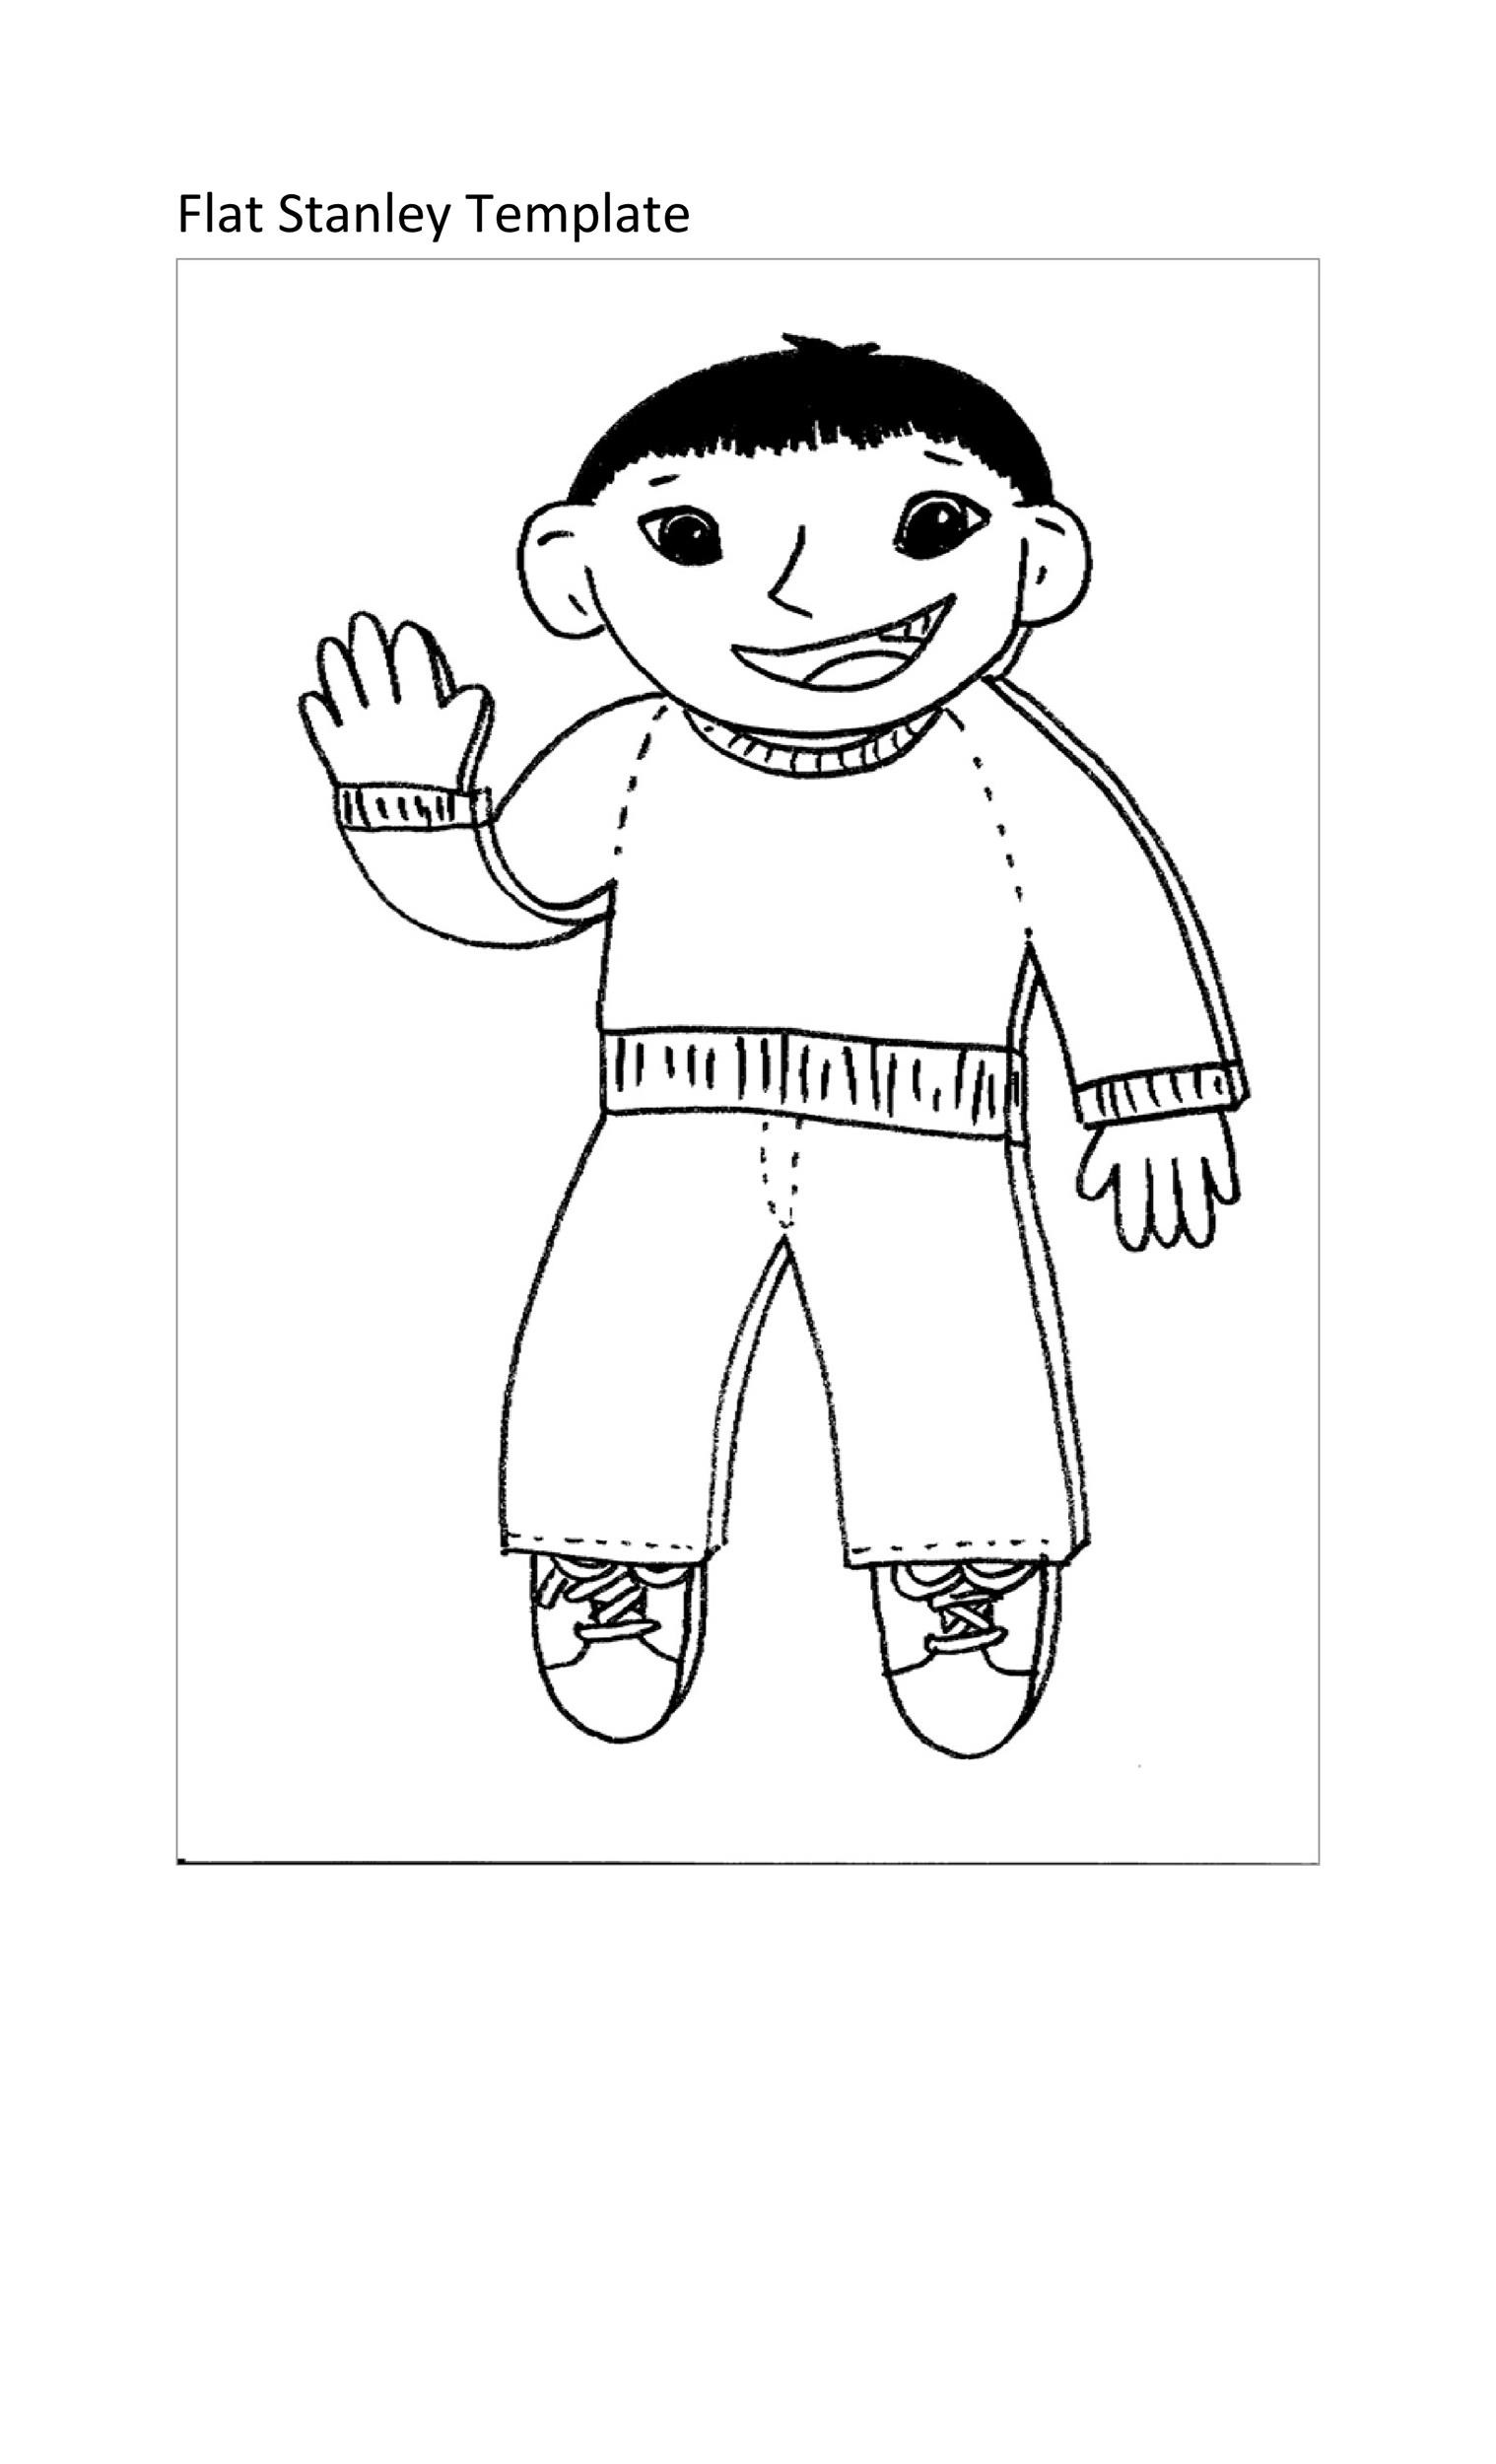 Free Flat Stanley Template 36